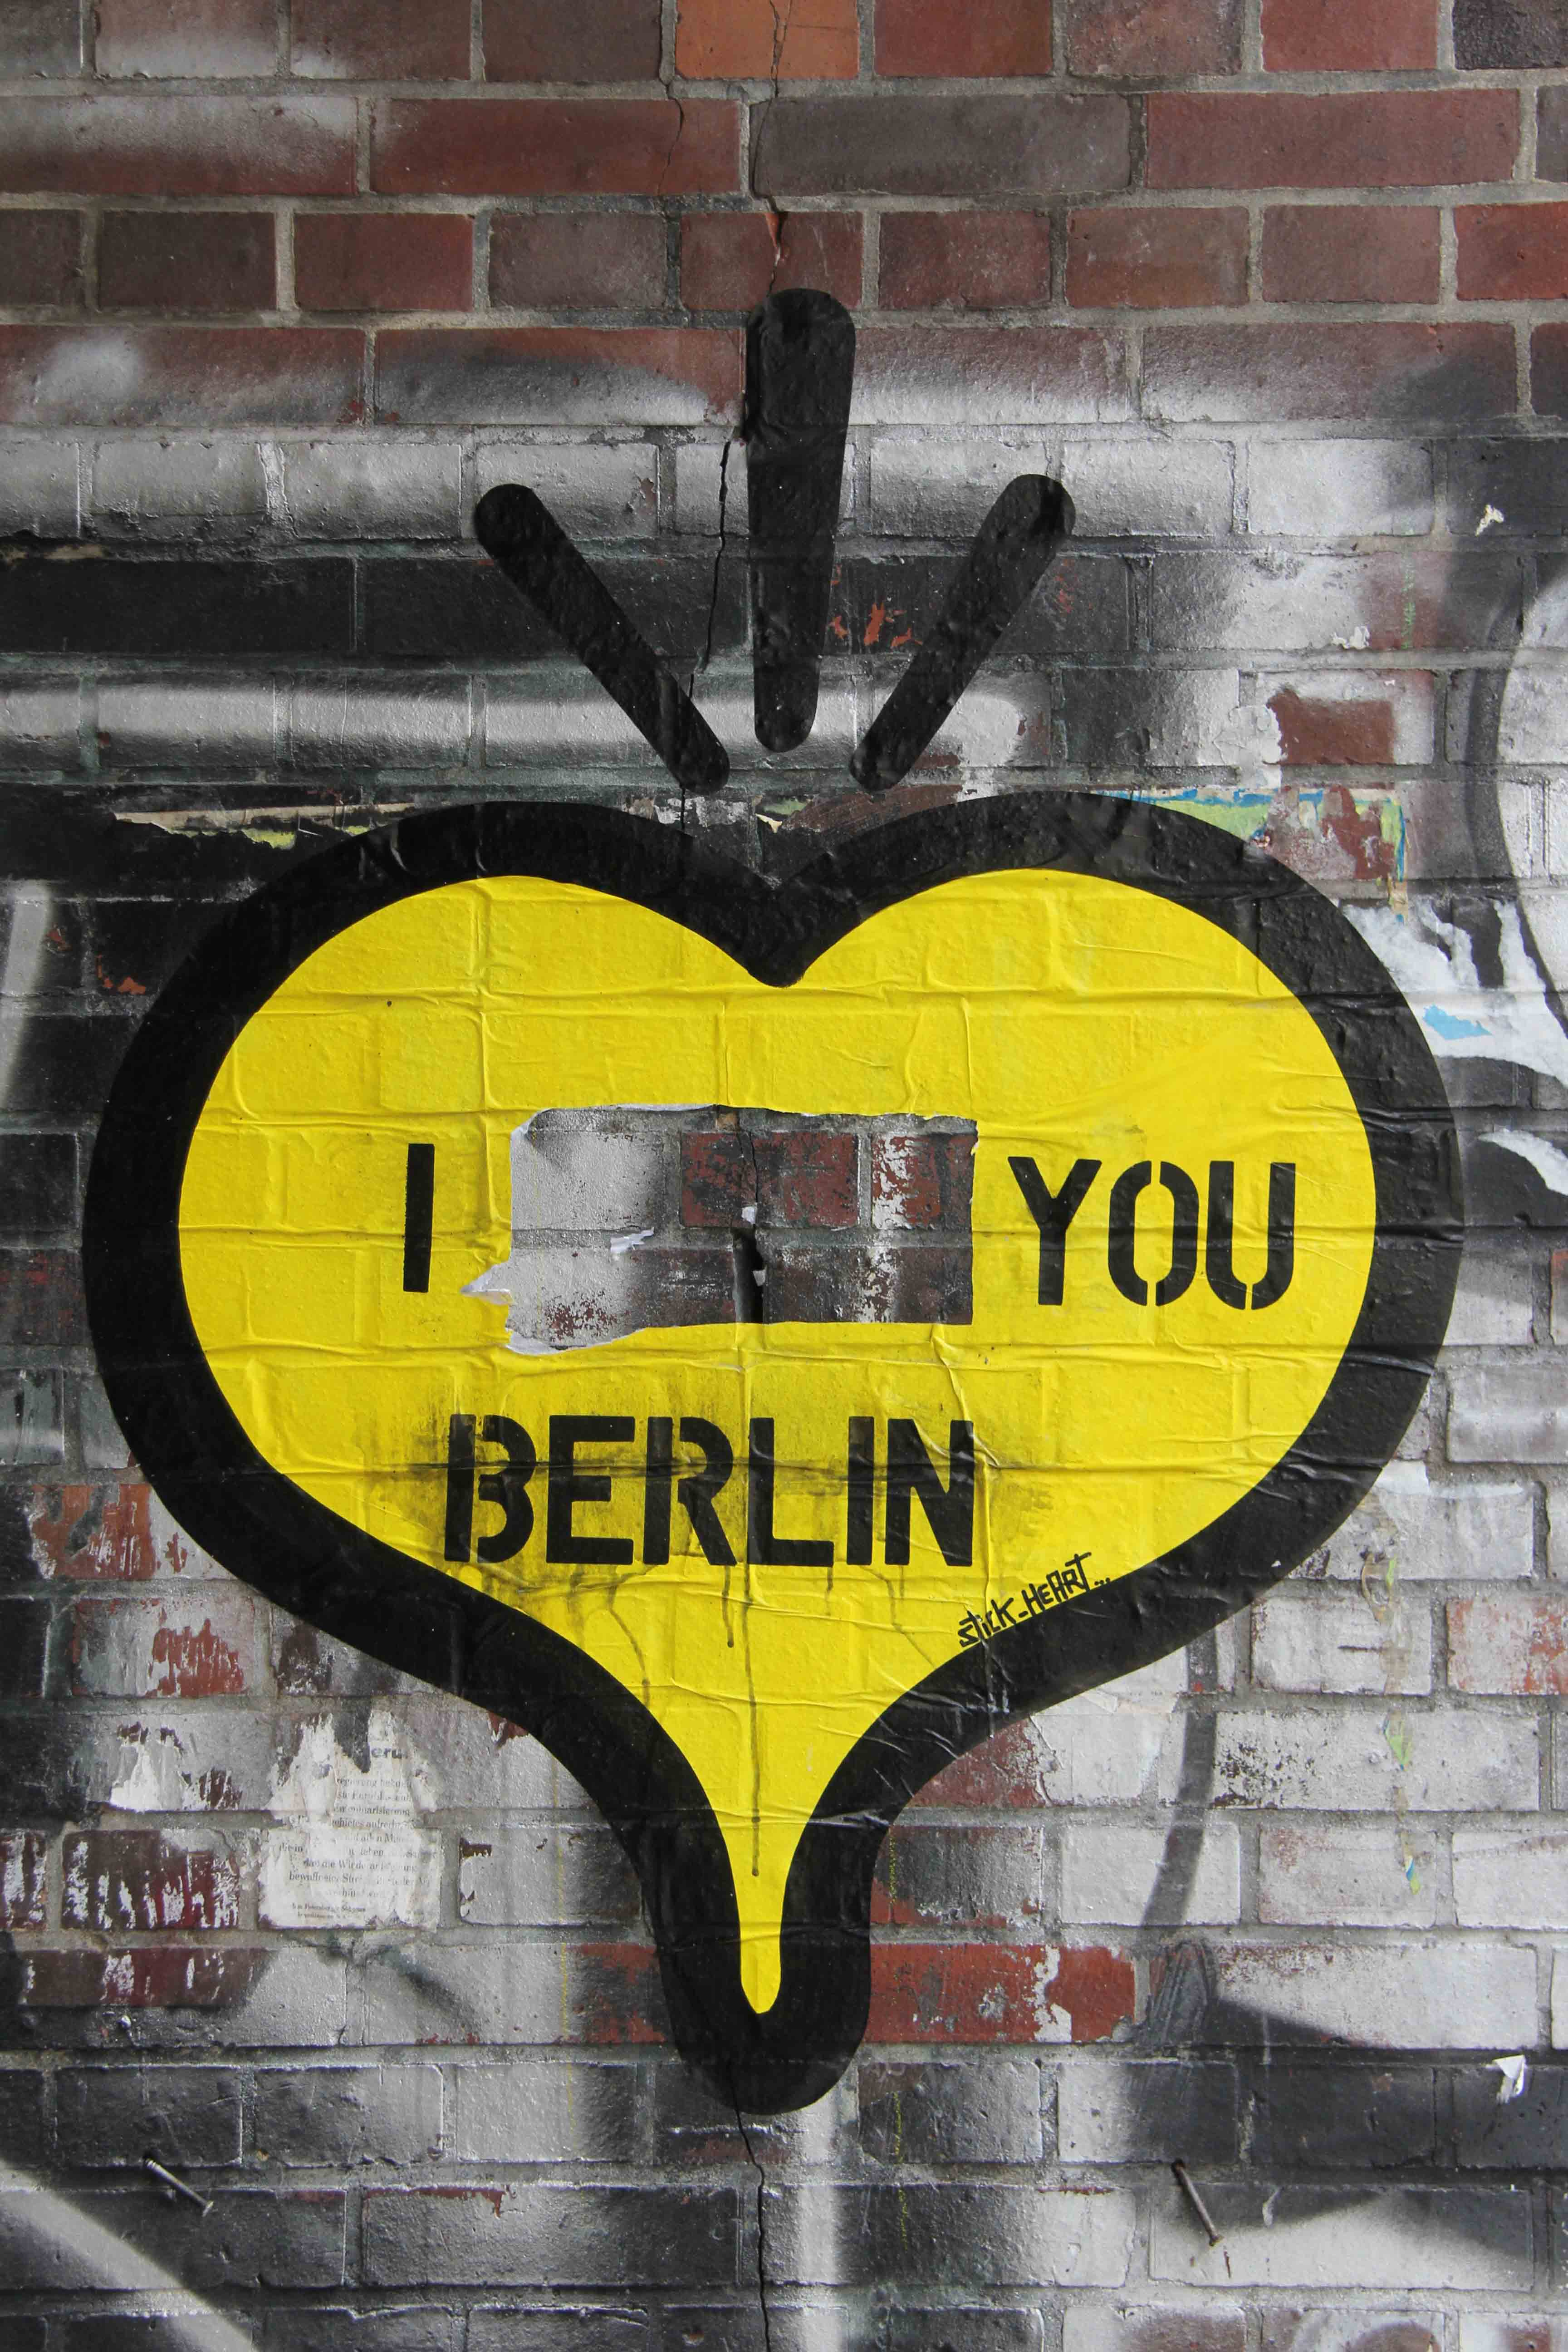 I ____ You Berlin - Street Art by Stick-Heart in Berlin